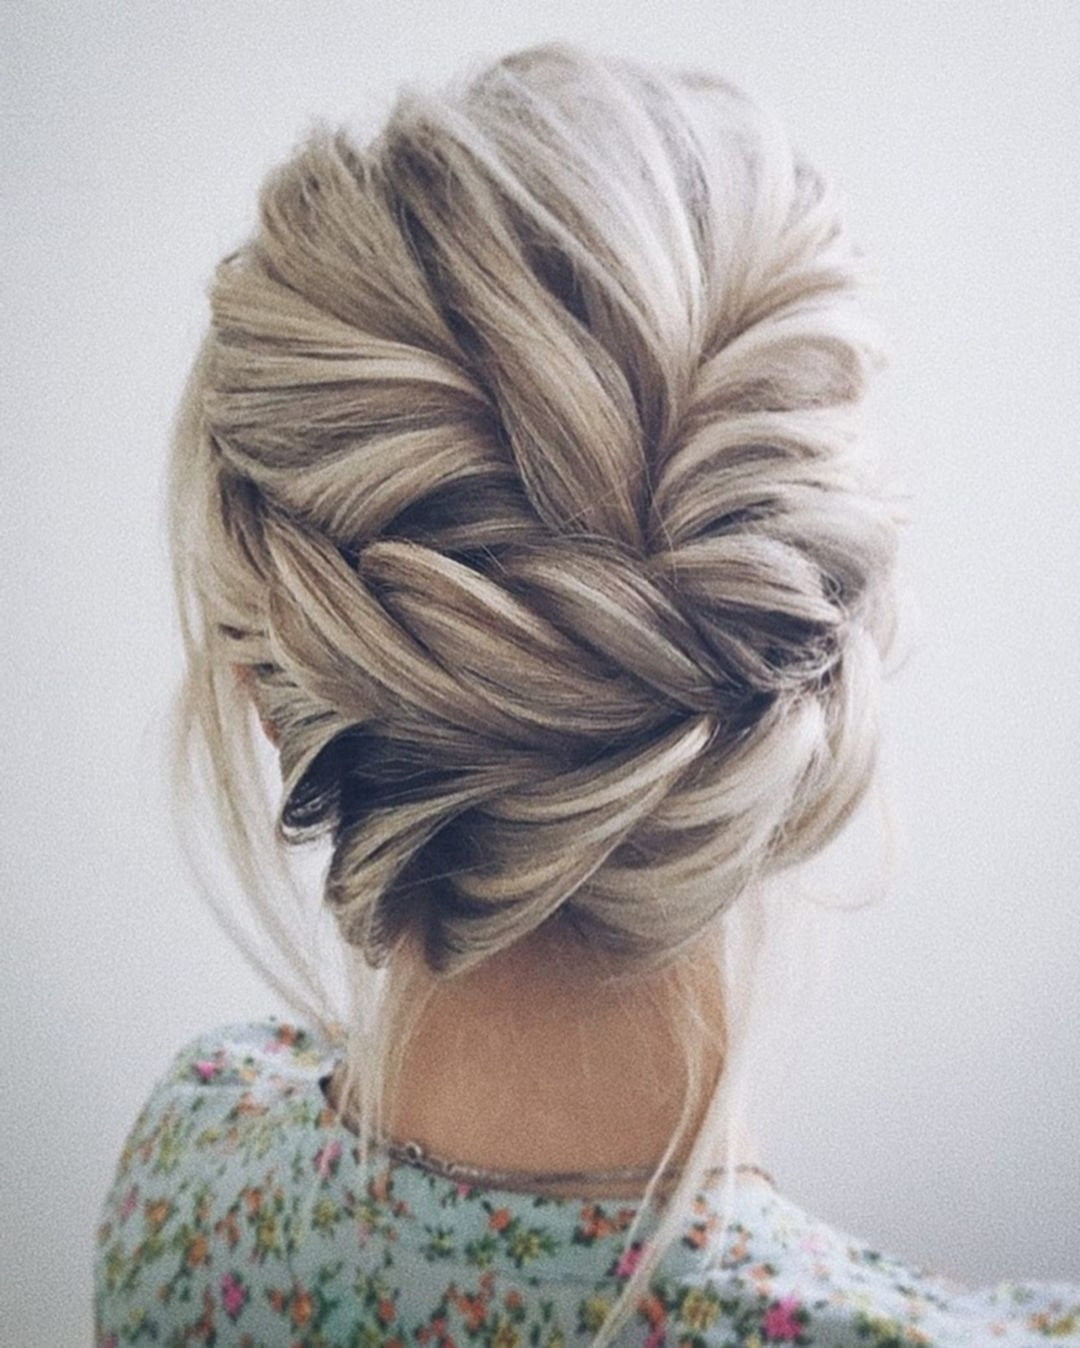 Wonderful Bridesmaid Updo Hairstyles 001 | Bridesmaid Updo For Bridesmaid Updo Hairstyles (View 15 of 15)